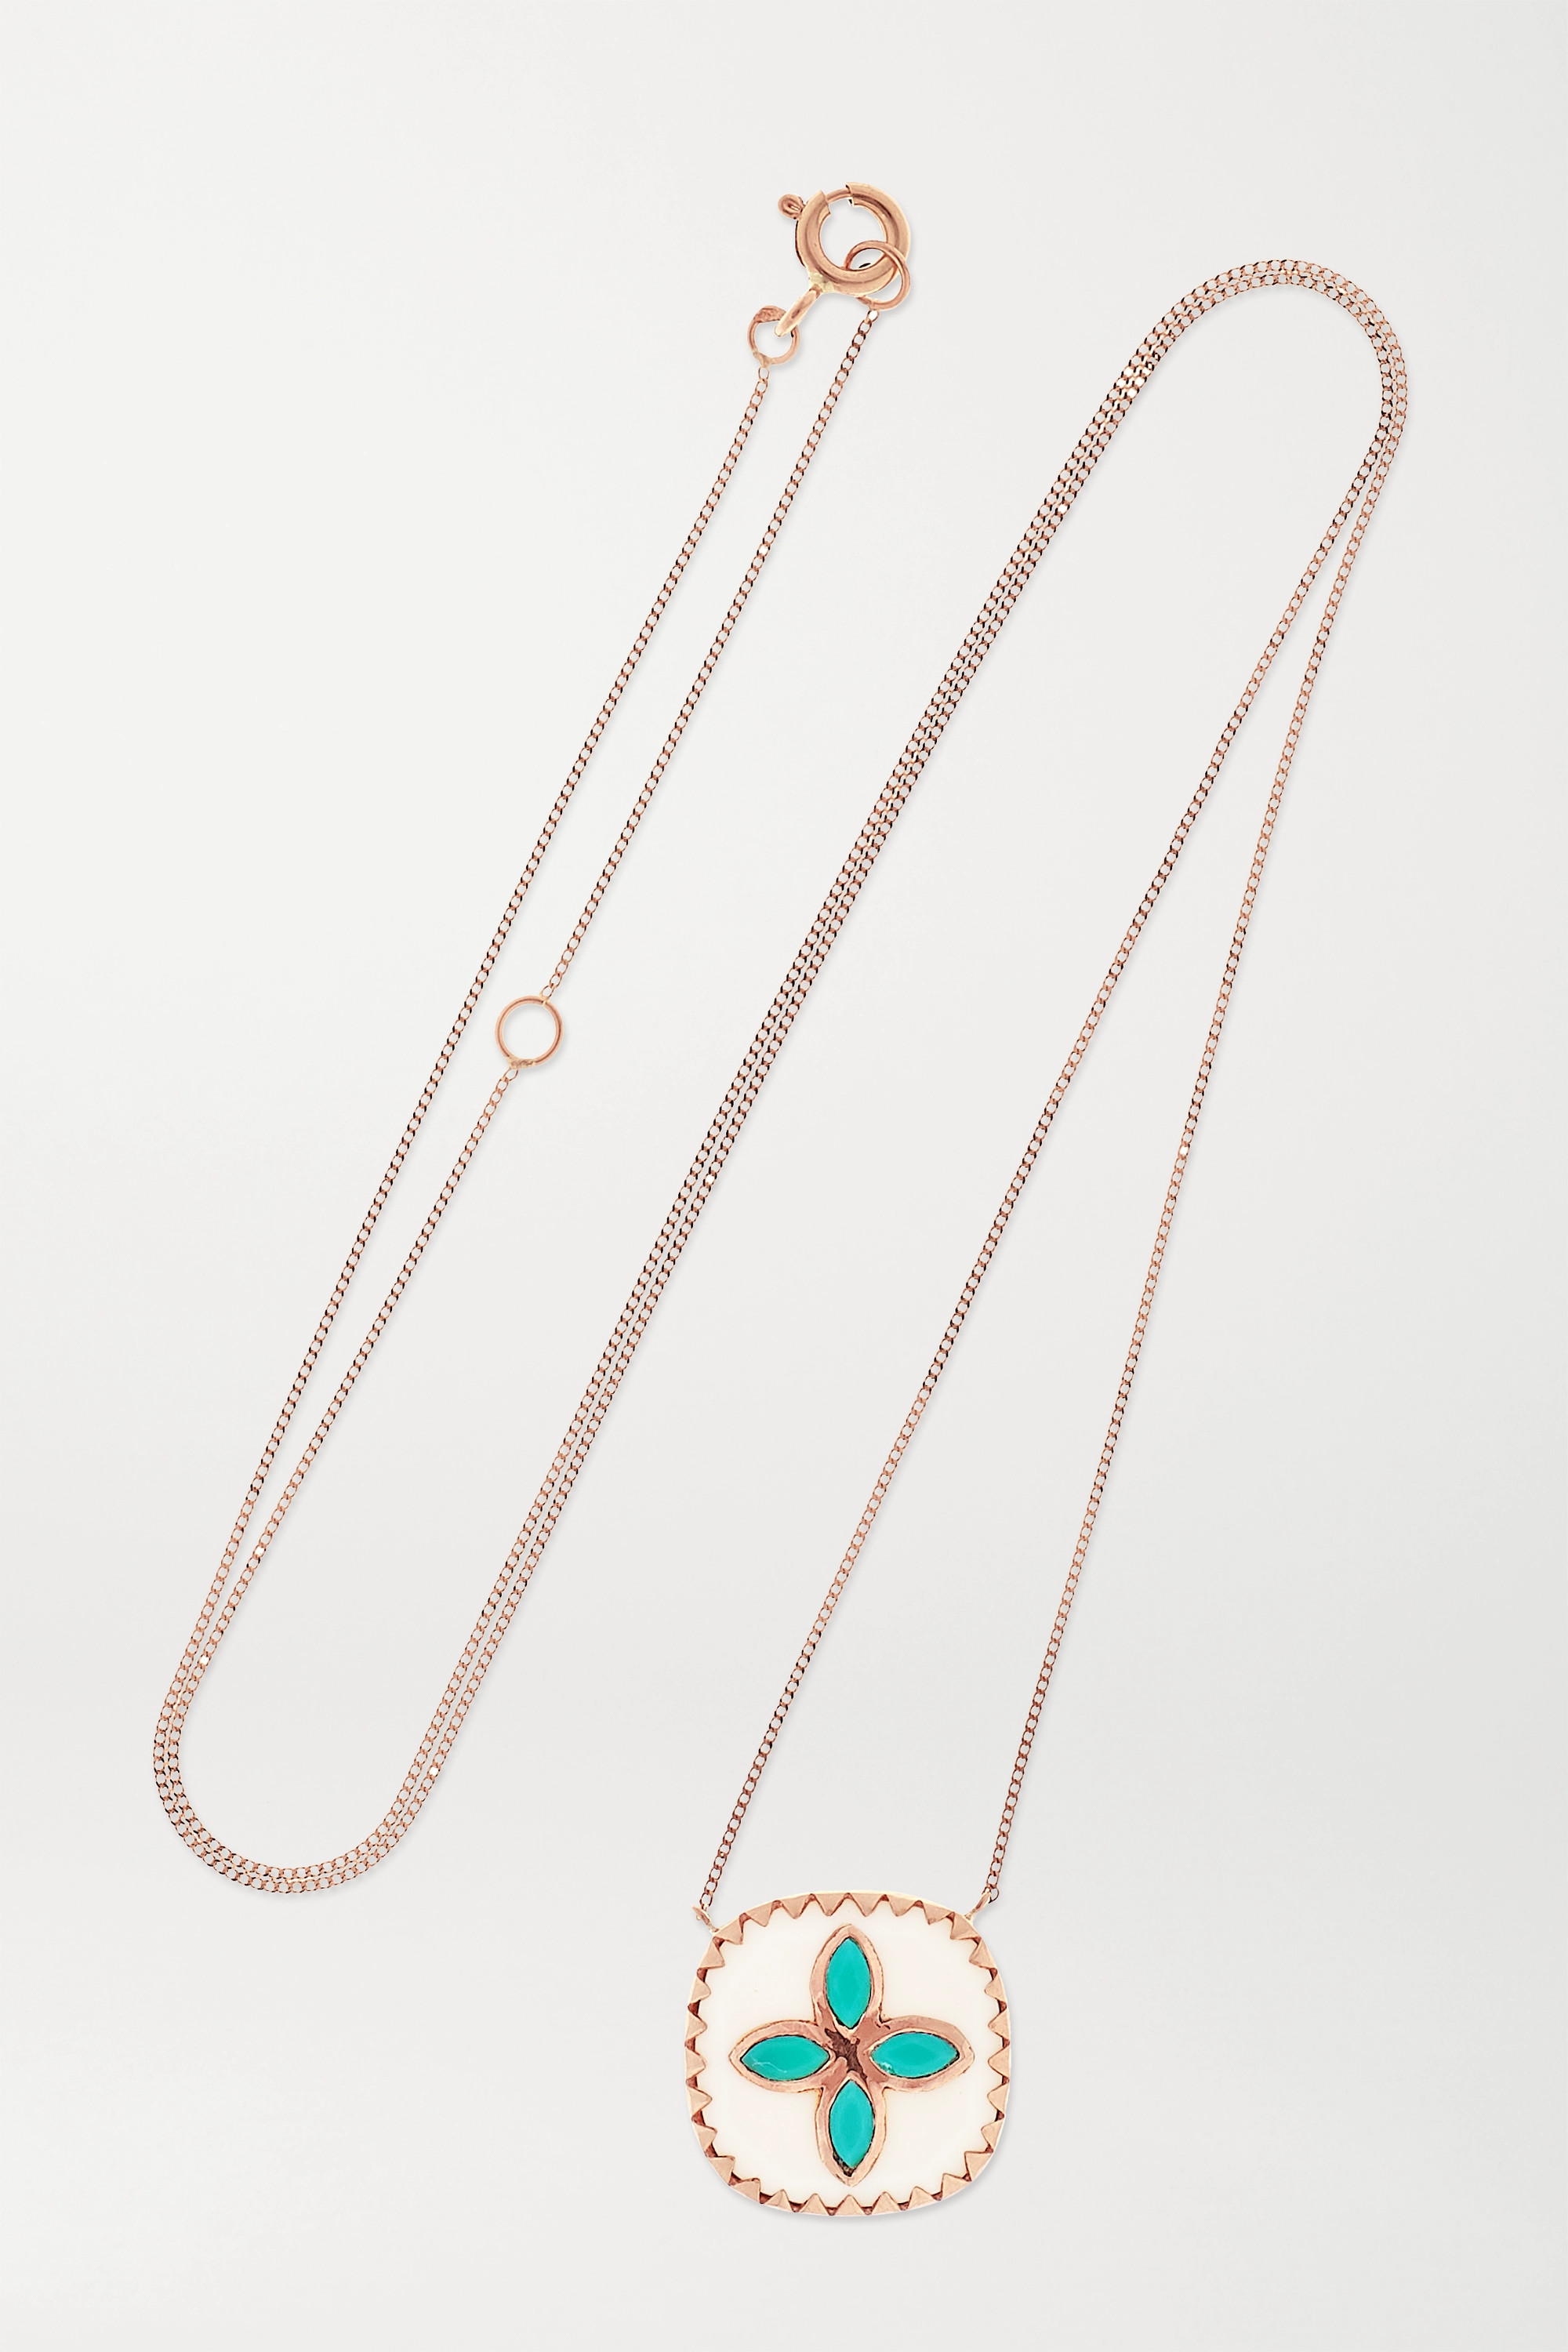 Pascale Monvoisin Bowie 9-karat rose gold, resin and turquoise necklace